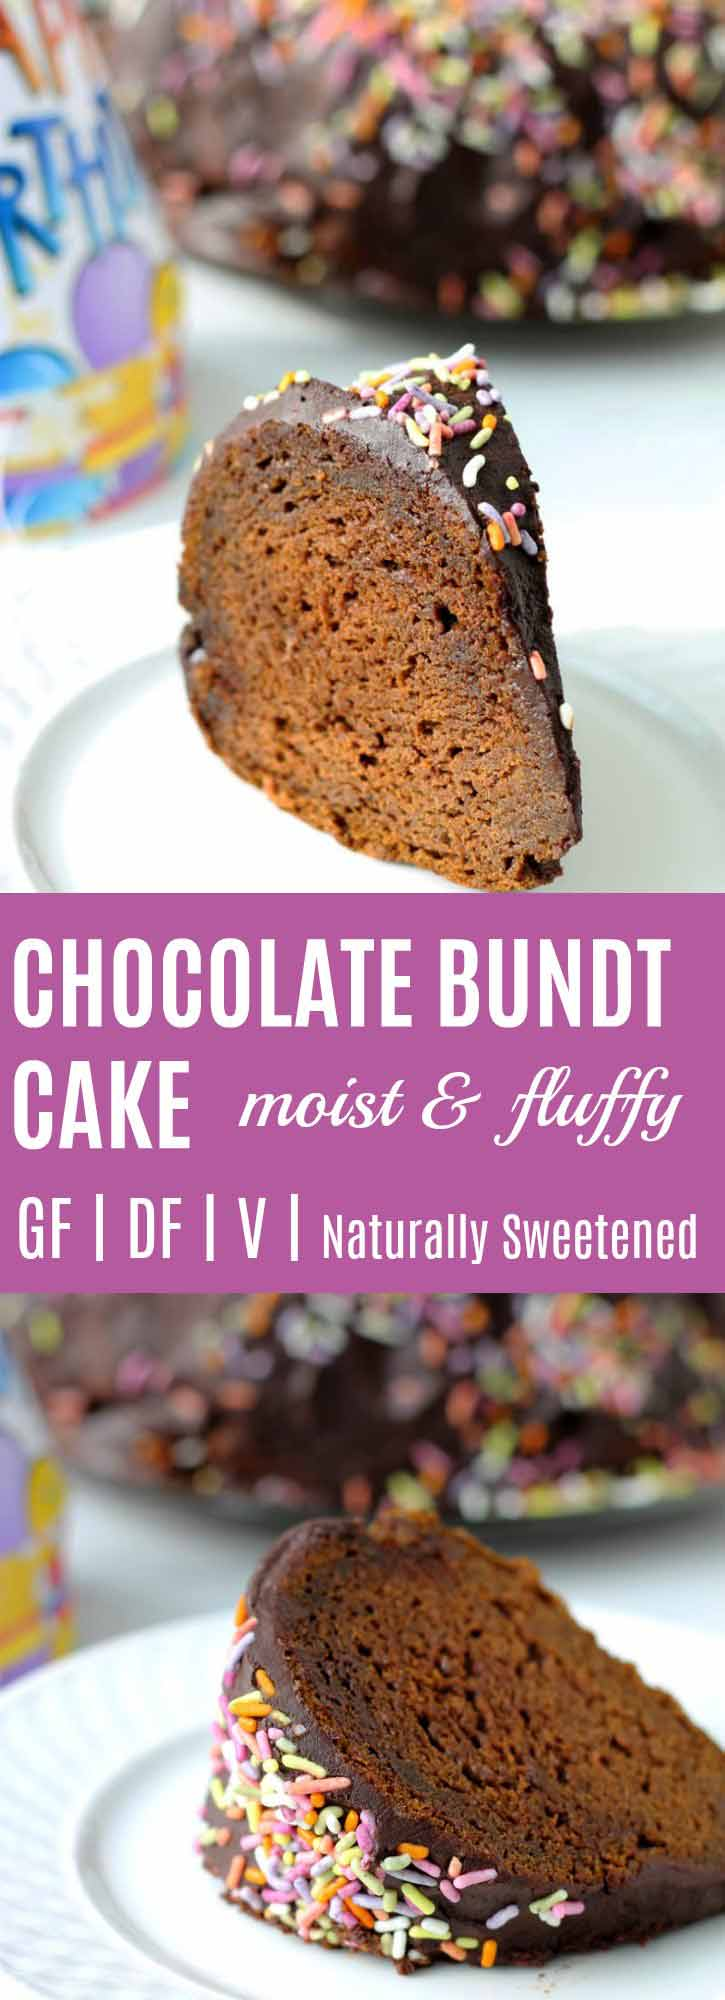 Moist Chocolate Bundt Cake Recipe {Vegan & Gluten-free} | This Moist Chocolate Bundt Cake is definitely as HEALTHY & DELICIOUS as cake gets. Moist, fluffy, naturally sweetened. You are going to love this recipe! | thenourishedfamily.com